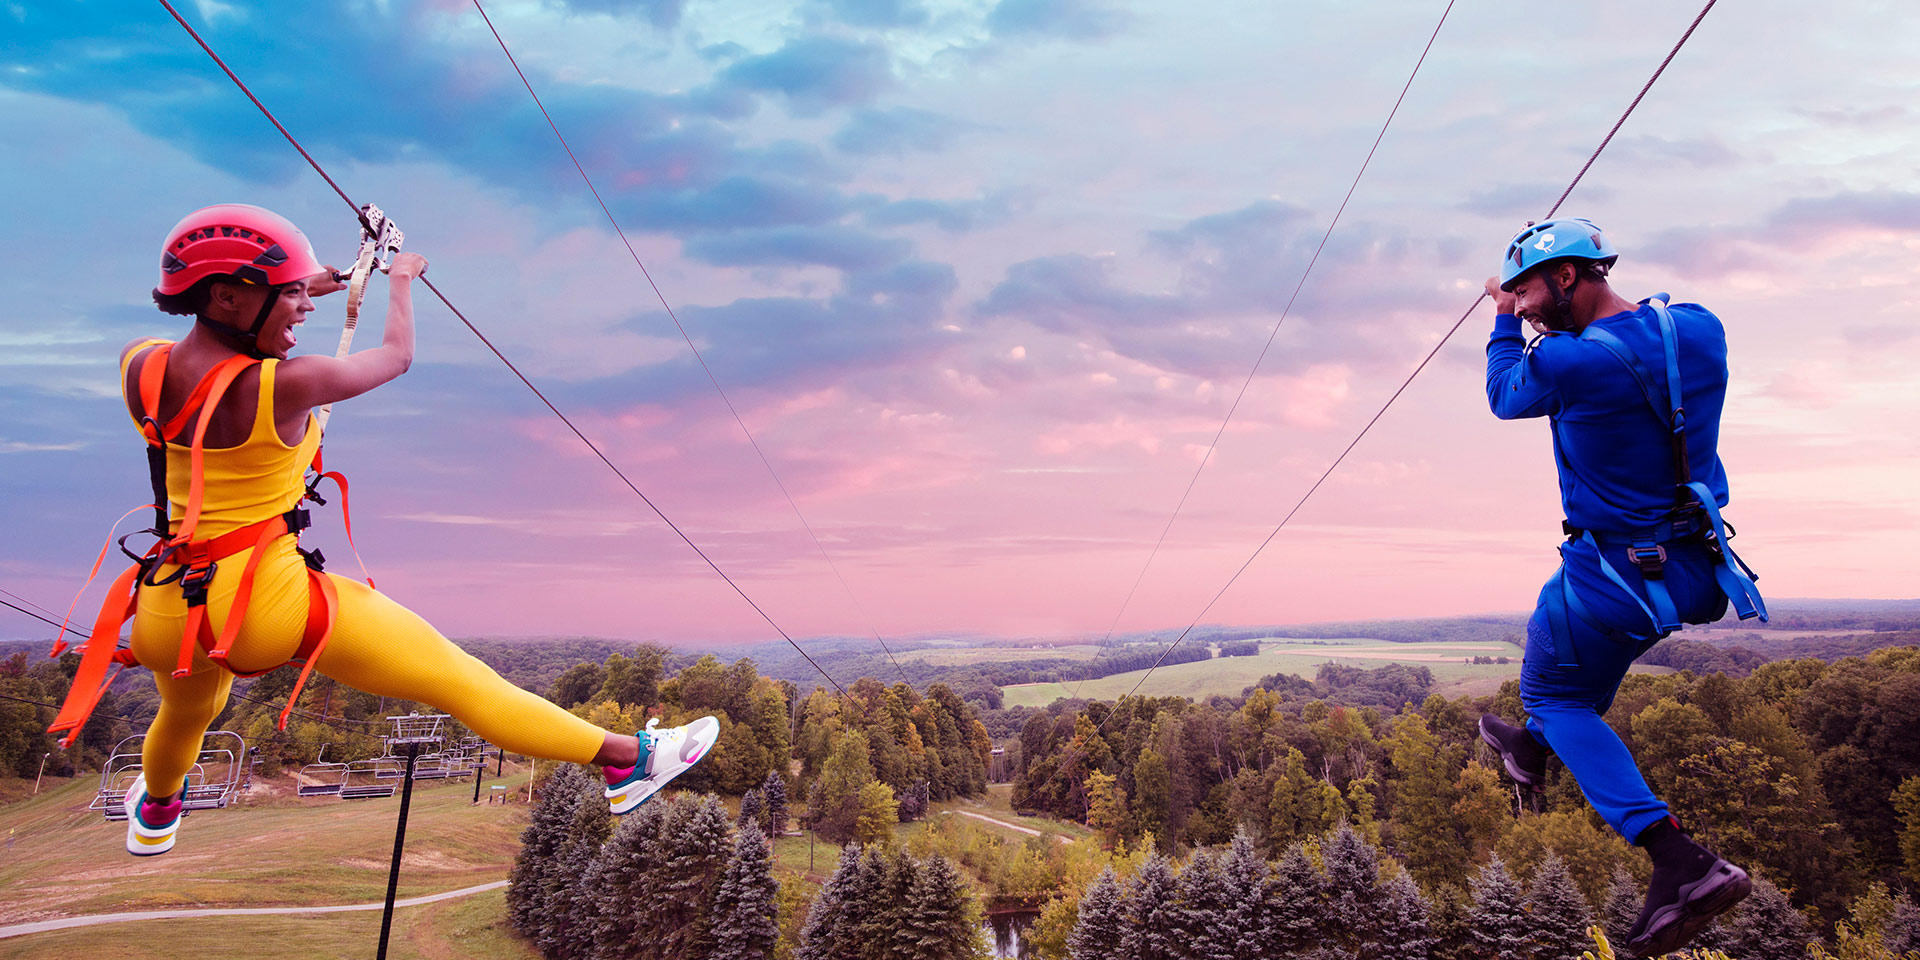 man and woman on a zipline parallel to one another